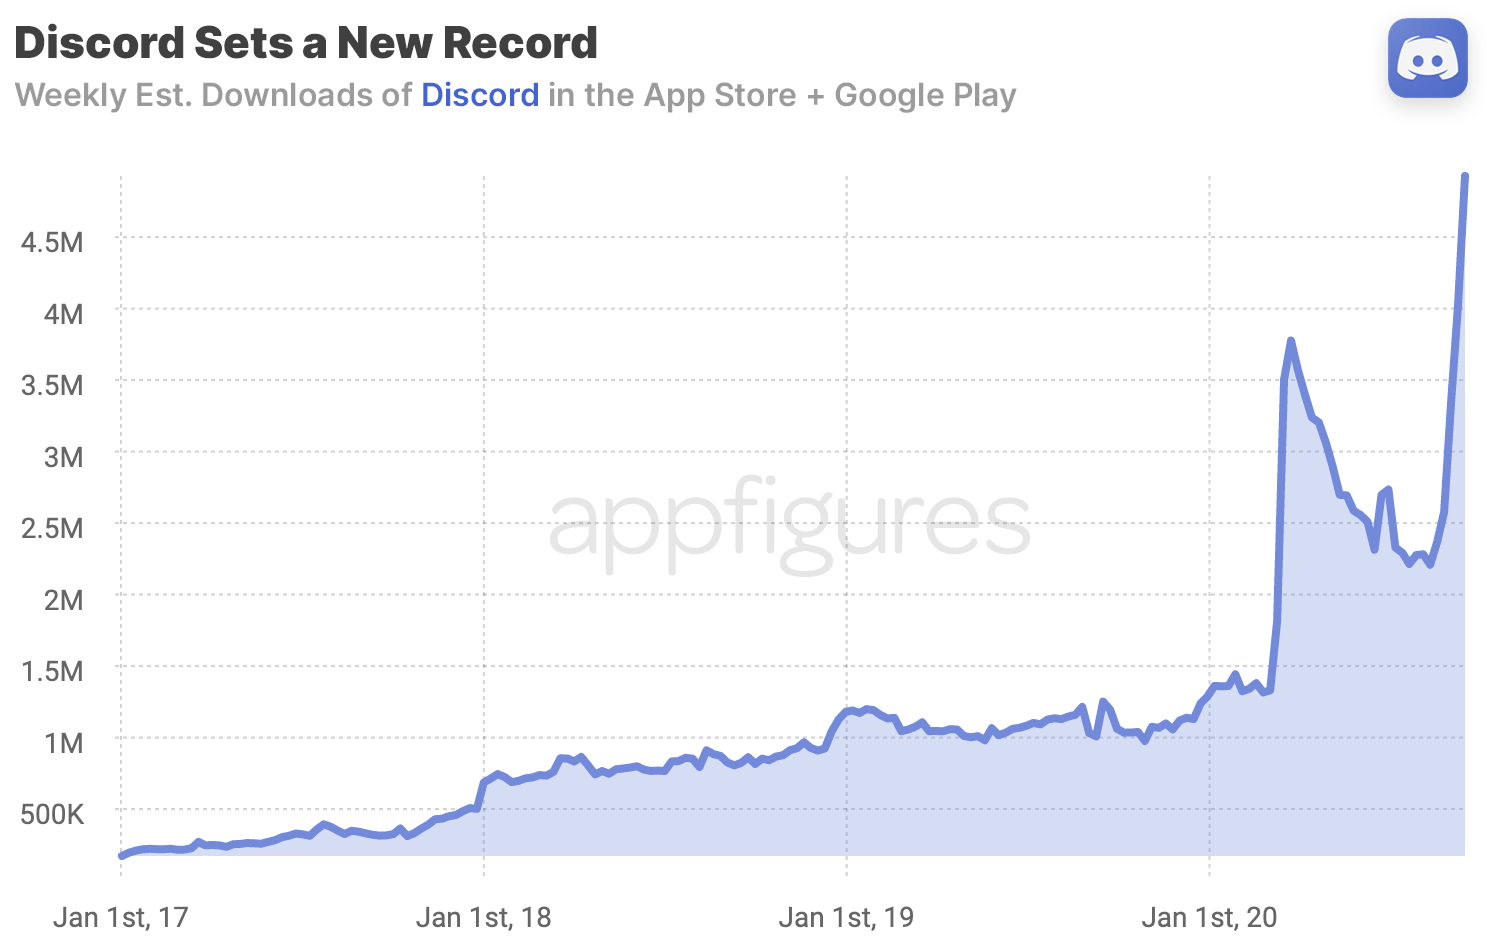 Discord downloads in the App Store and on Google Play